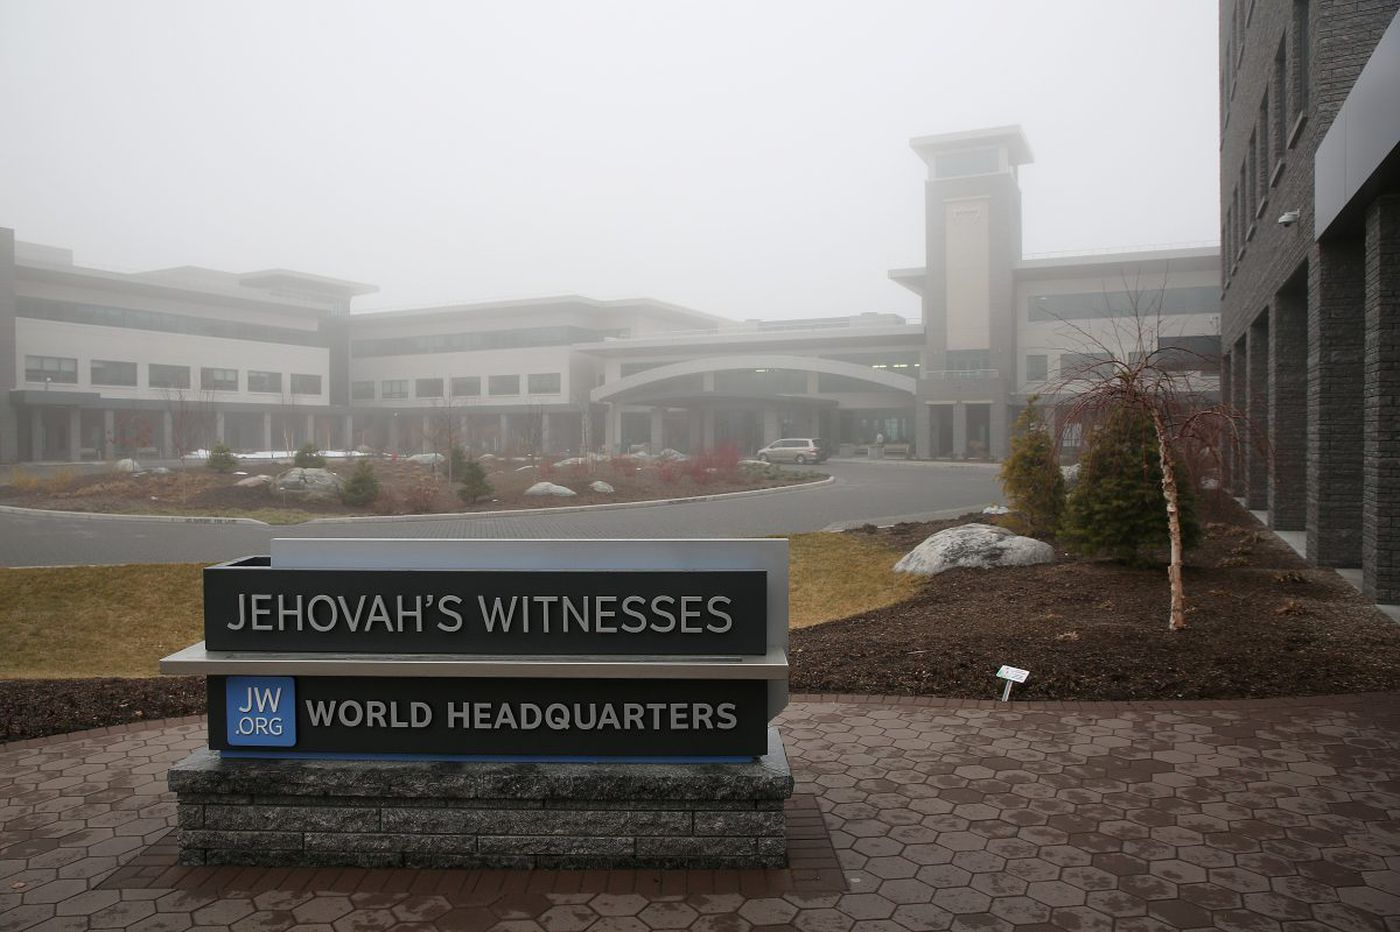 A Pennsylvania grand jury is investigating Jehovah's Witnesses for alleged sex-abuse cover-up, man who testified says